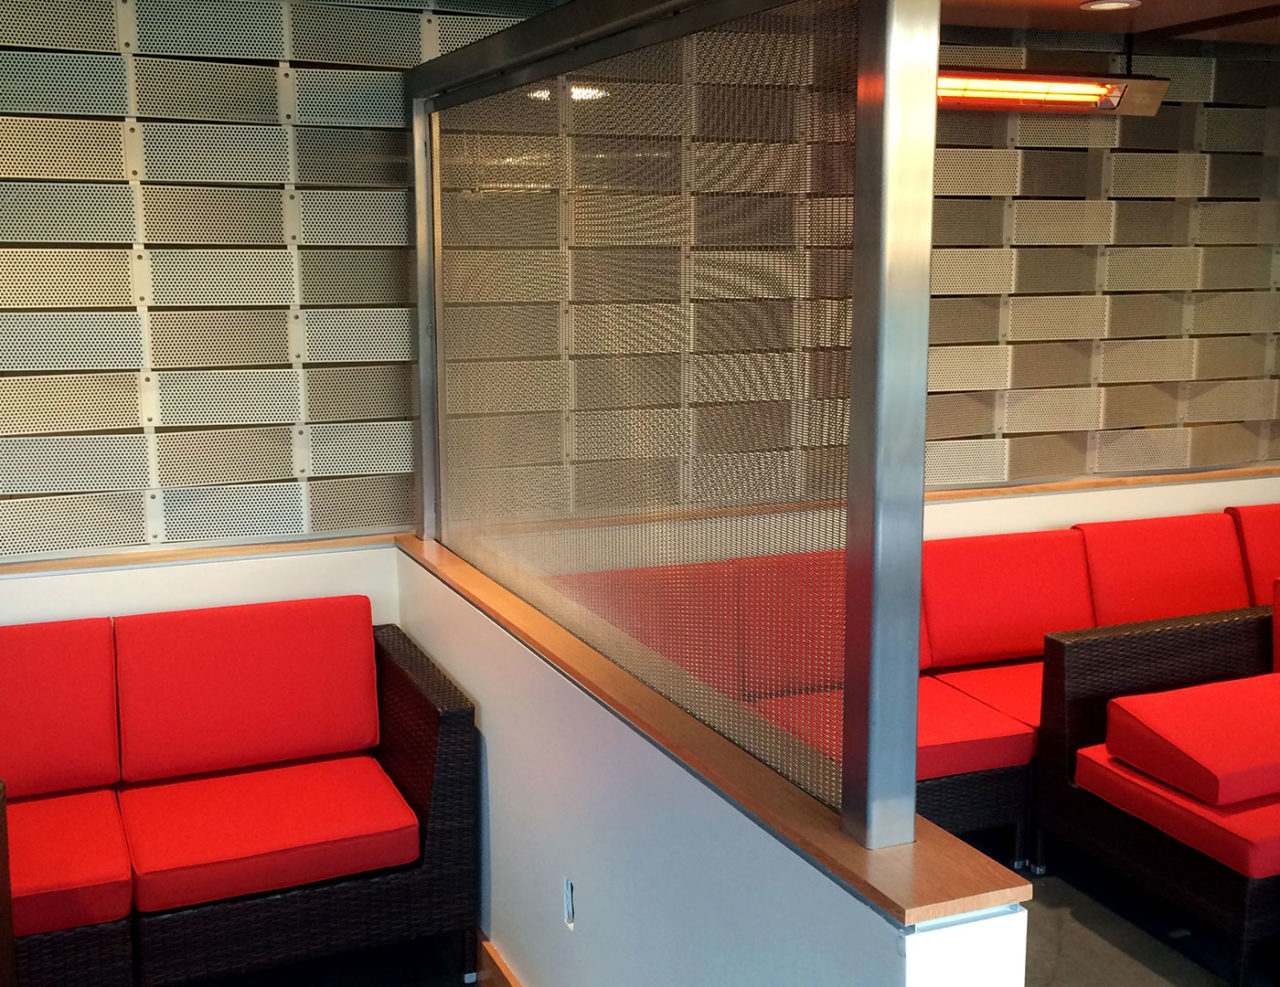 Custom stainless steel mesh partitions between suite areas